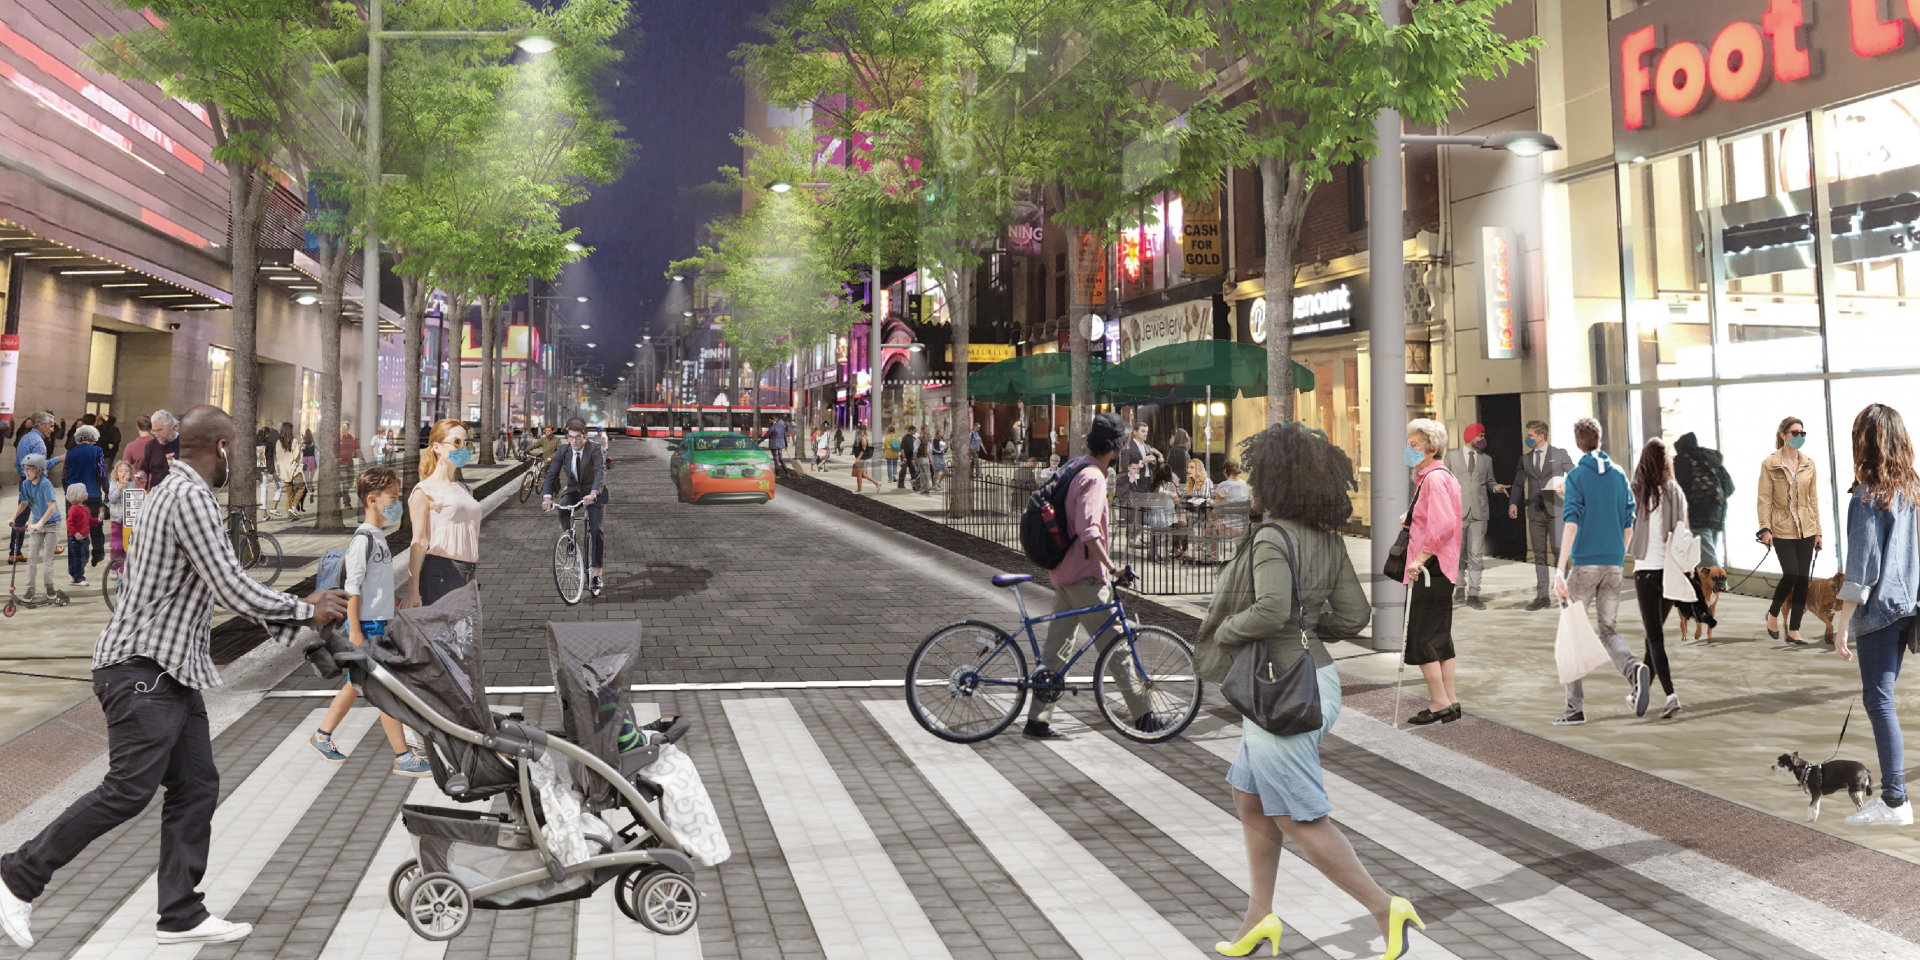 Toronto's iconic Yonge Street to be transformed into pedestrian-friendly space